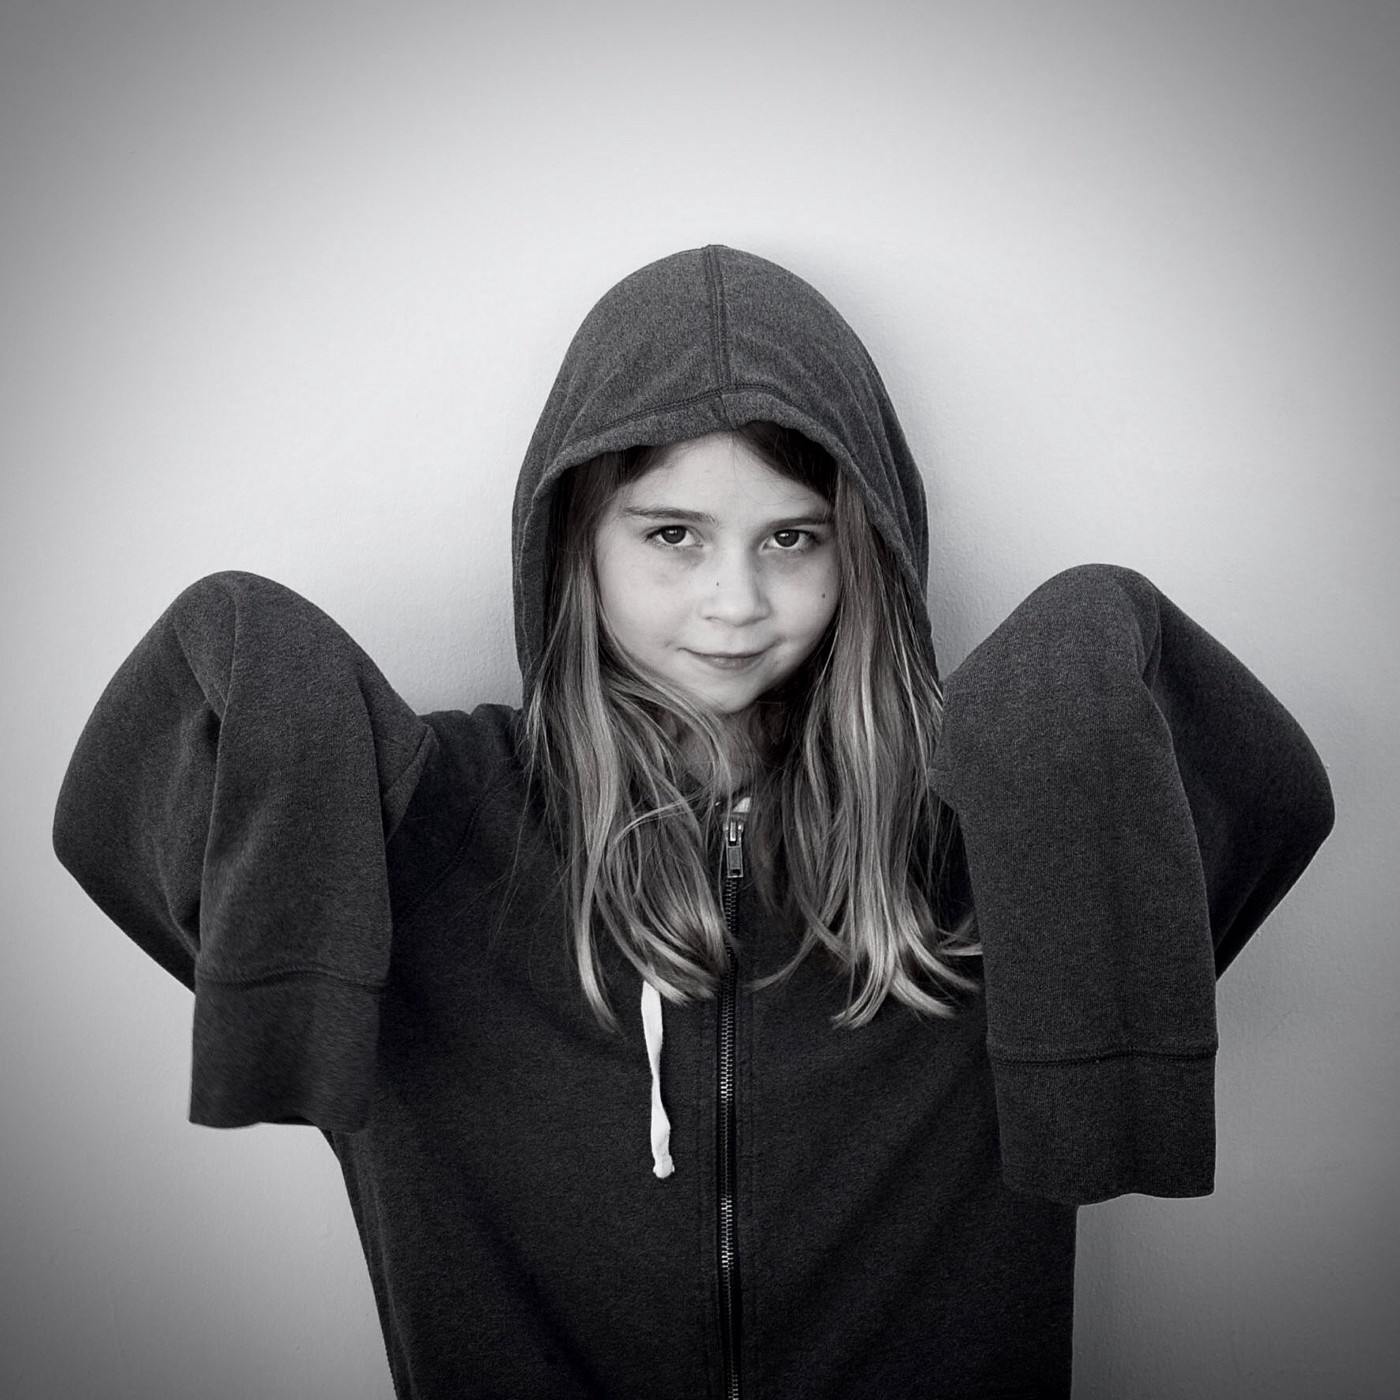 a little girl wearing a big sweatshirt